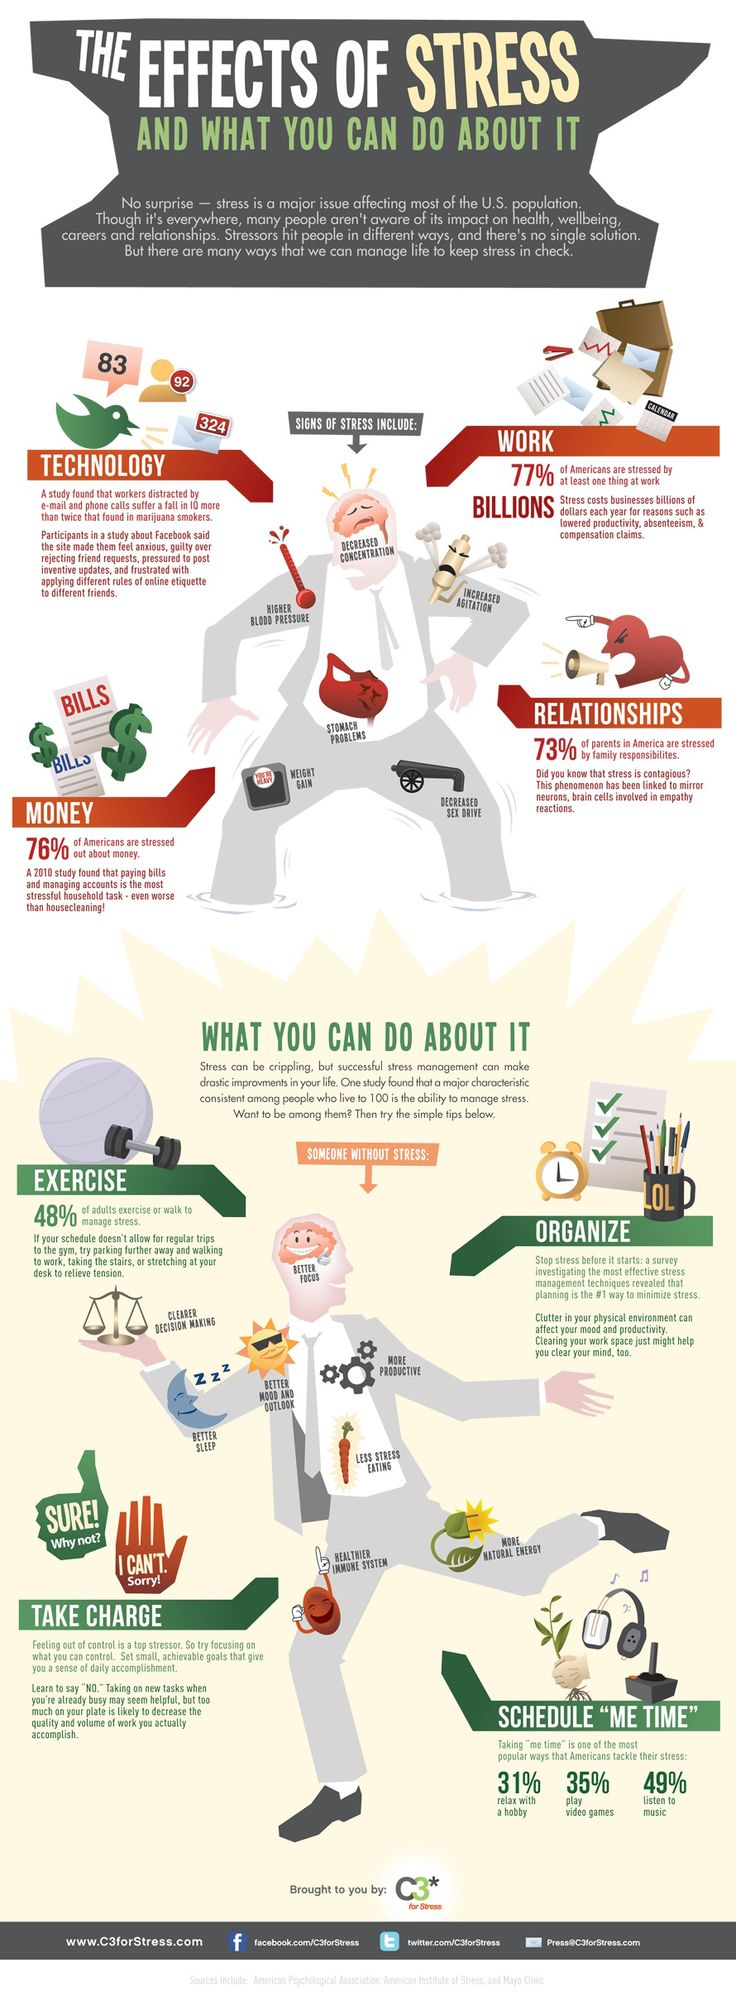 Stress hormones appear to rapidly exacerbate the formation of brain lesions that are the hallmarks of Alzheimer's disease, according to researchers at UC Irvine. The findings suggest that managing stress and reducing certain medications prescribed for the elderly could slow down the progression of this devastating disease. Learn other ways to protect yourself against Alzheimer's and take a free risk assessment at www.memoryaid.org